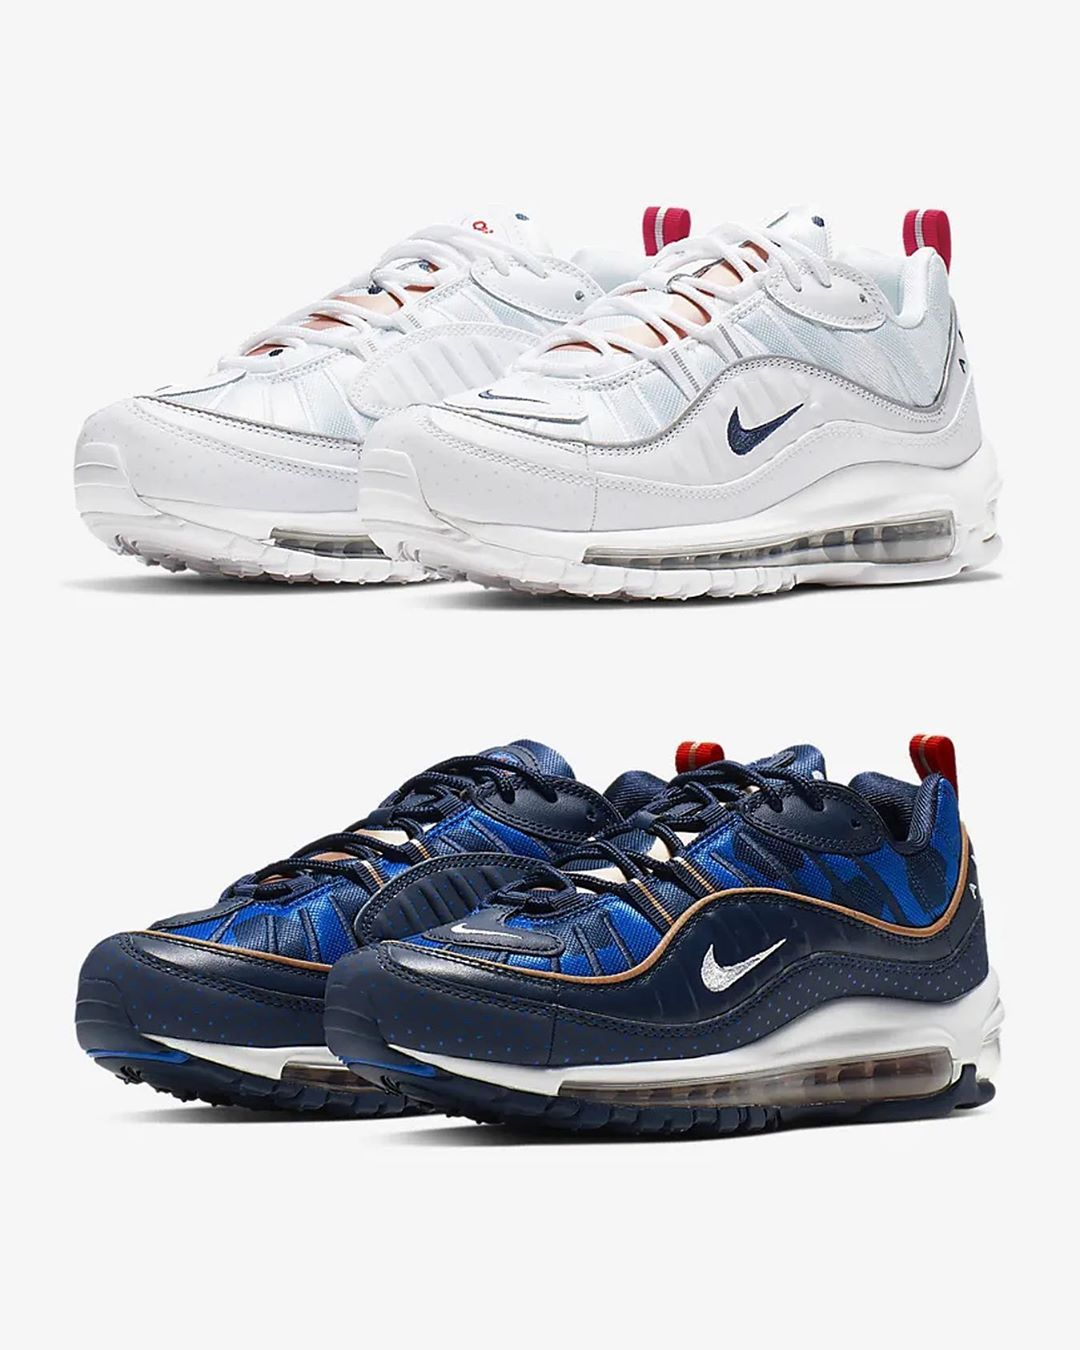 new product 6adca b56c2 The NIKE WMNS AIR MAX 98 UNITE TOTALE are now available ...